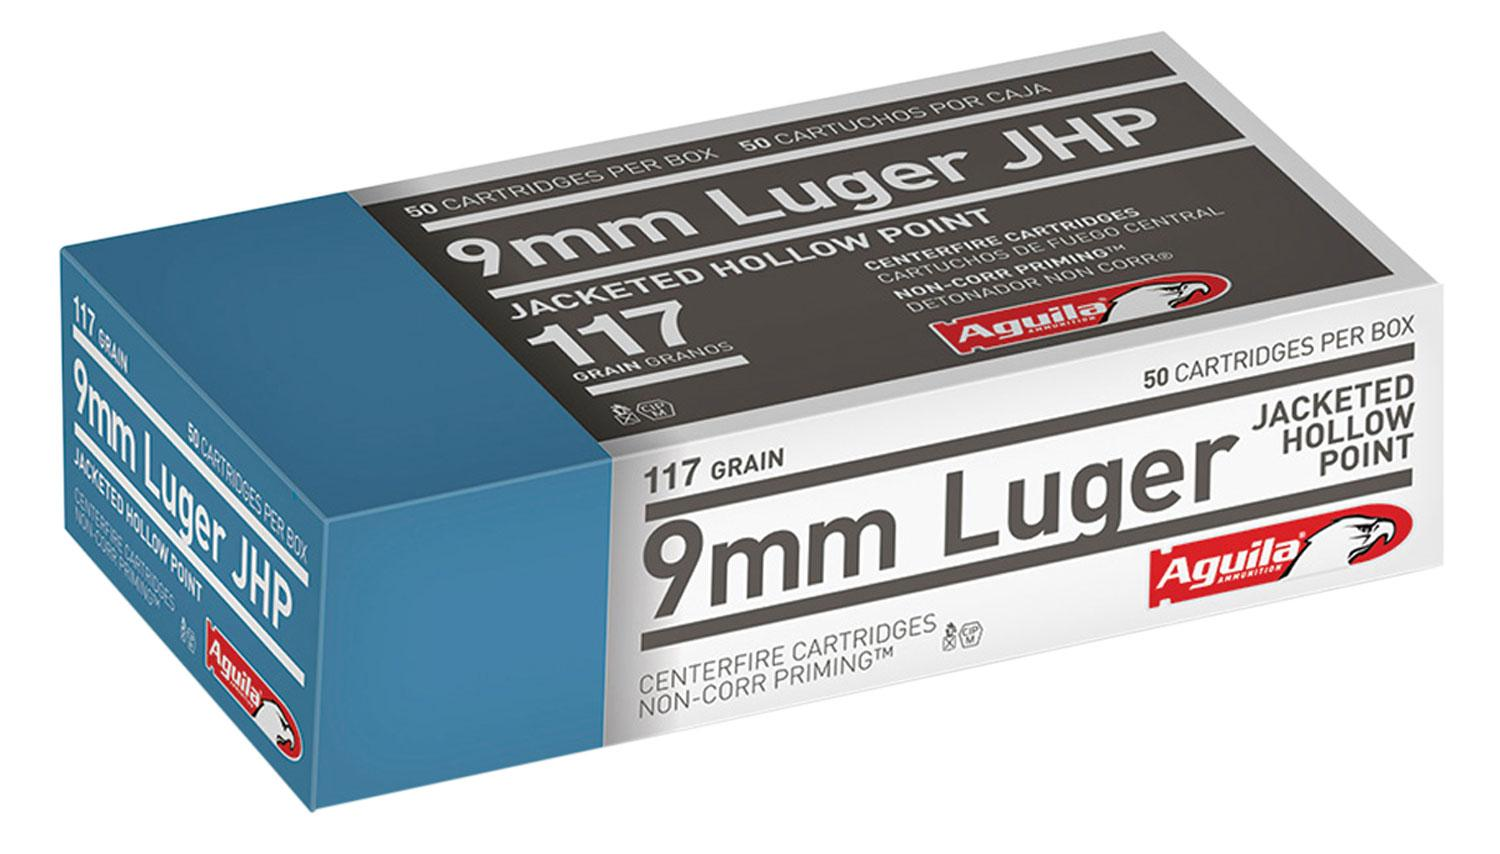 Aguila 1e092112 9mm Luger 117 Gr Jacketed Hollow Point 50 Bx/10 Cs